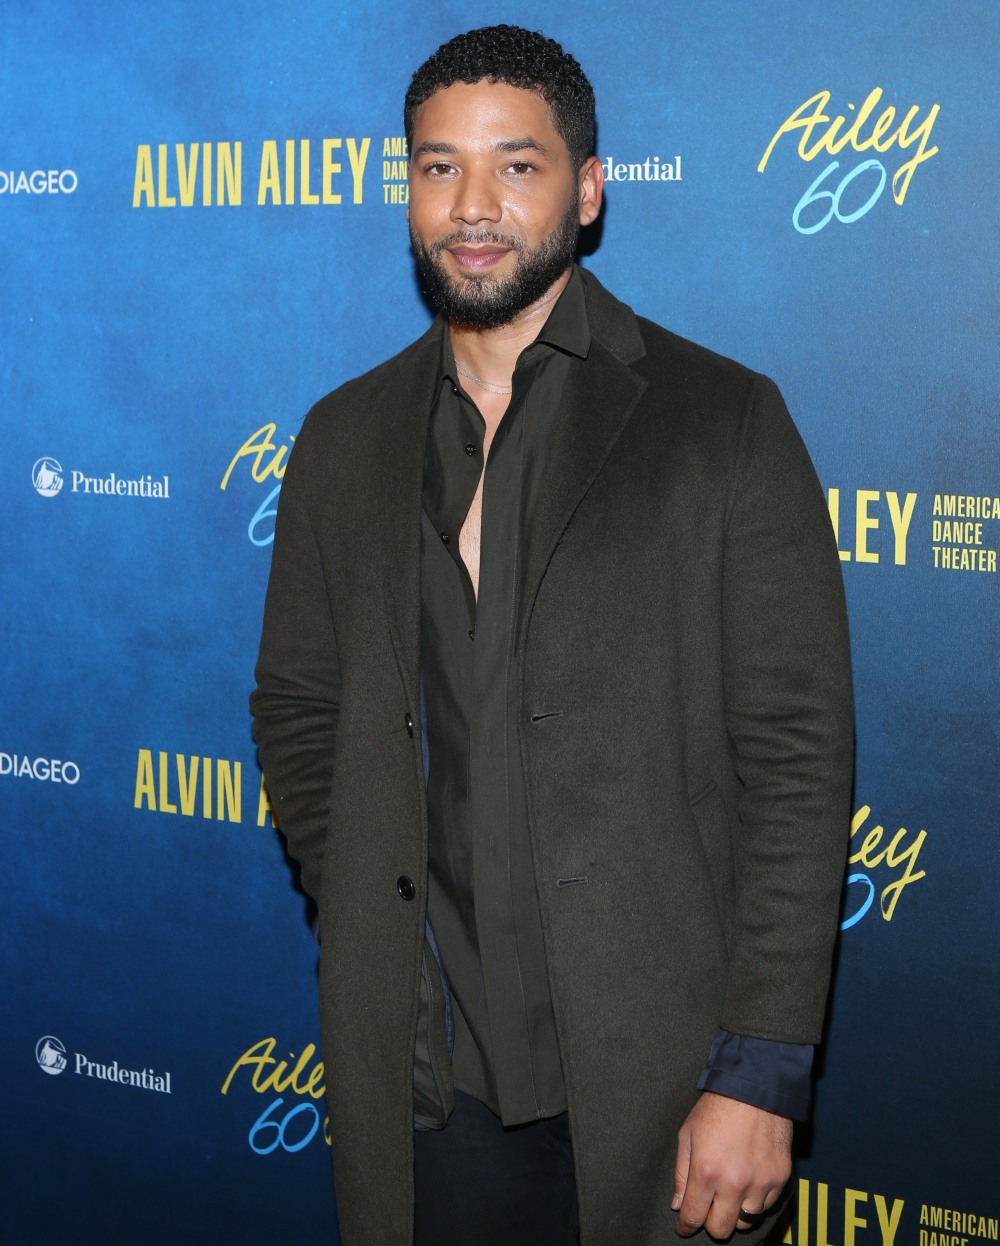 Alvin Ailey American Dance Theater's 60th Anniversary Gala - Arrivals